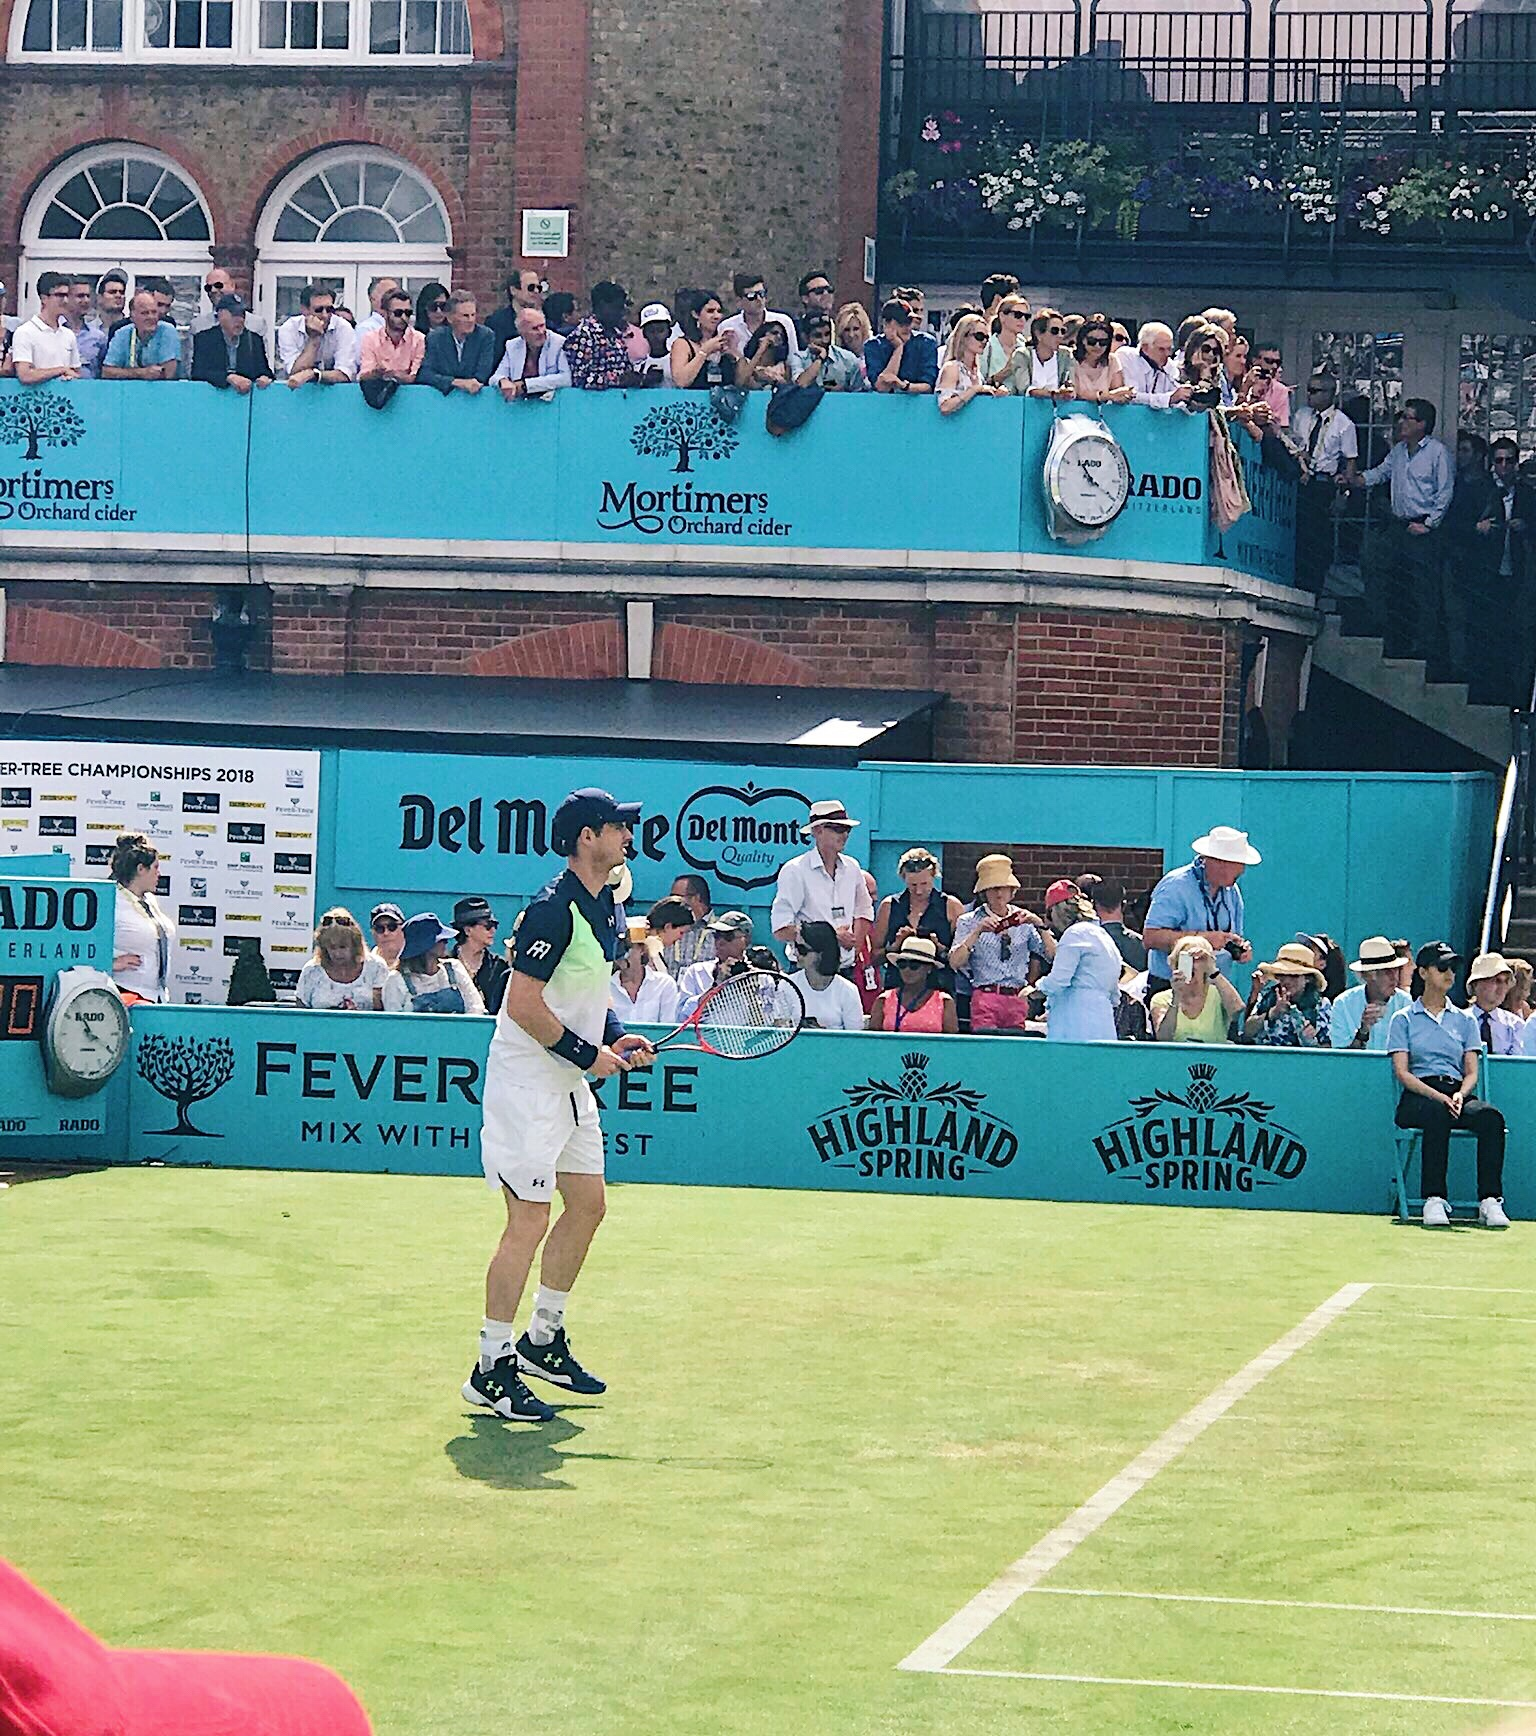 Fever tree championships